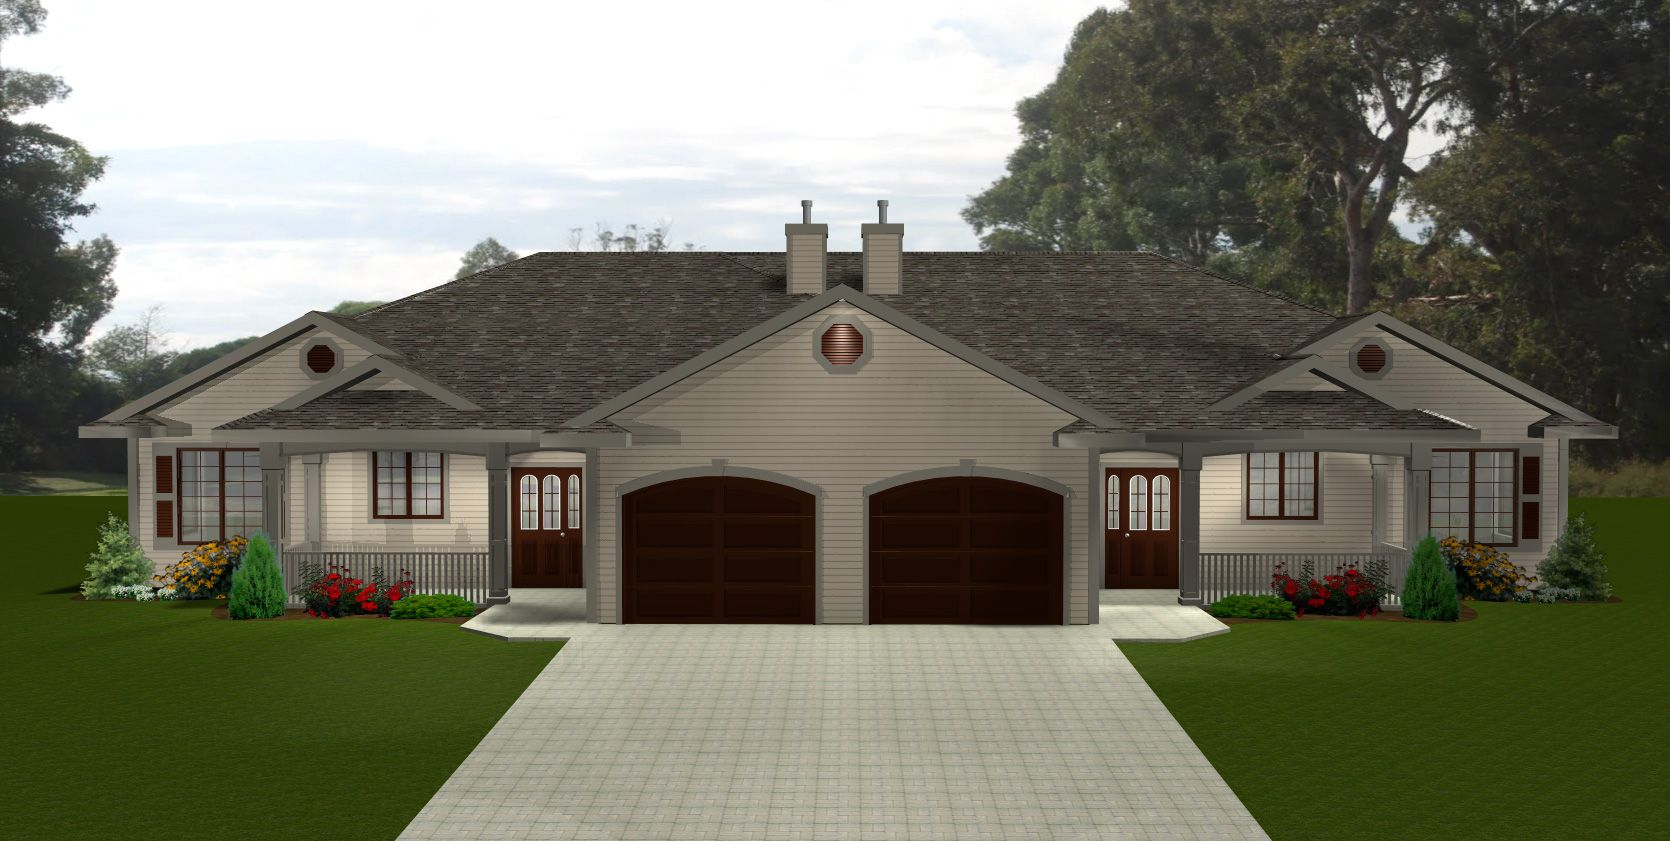 Ranch style duplex home plans styles of homes with Ranch style duplex plans